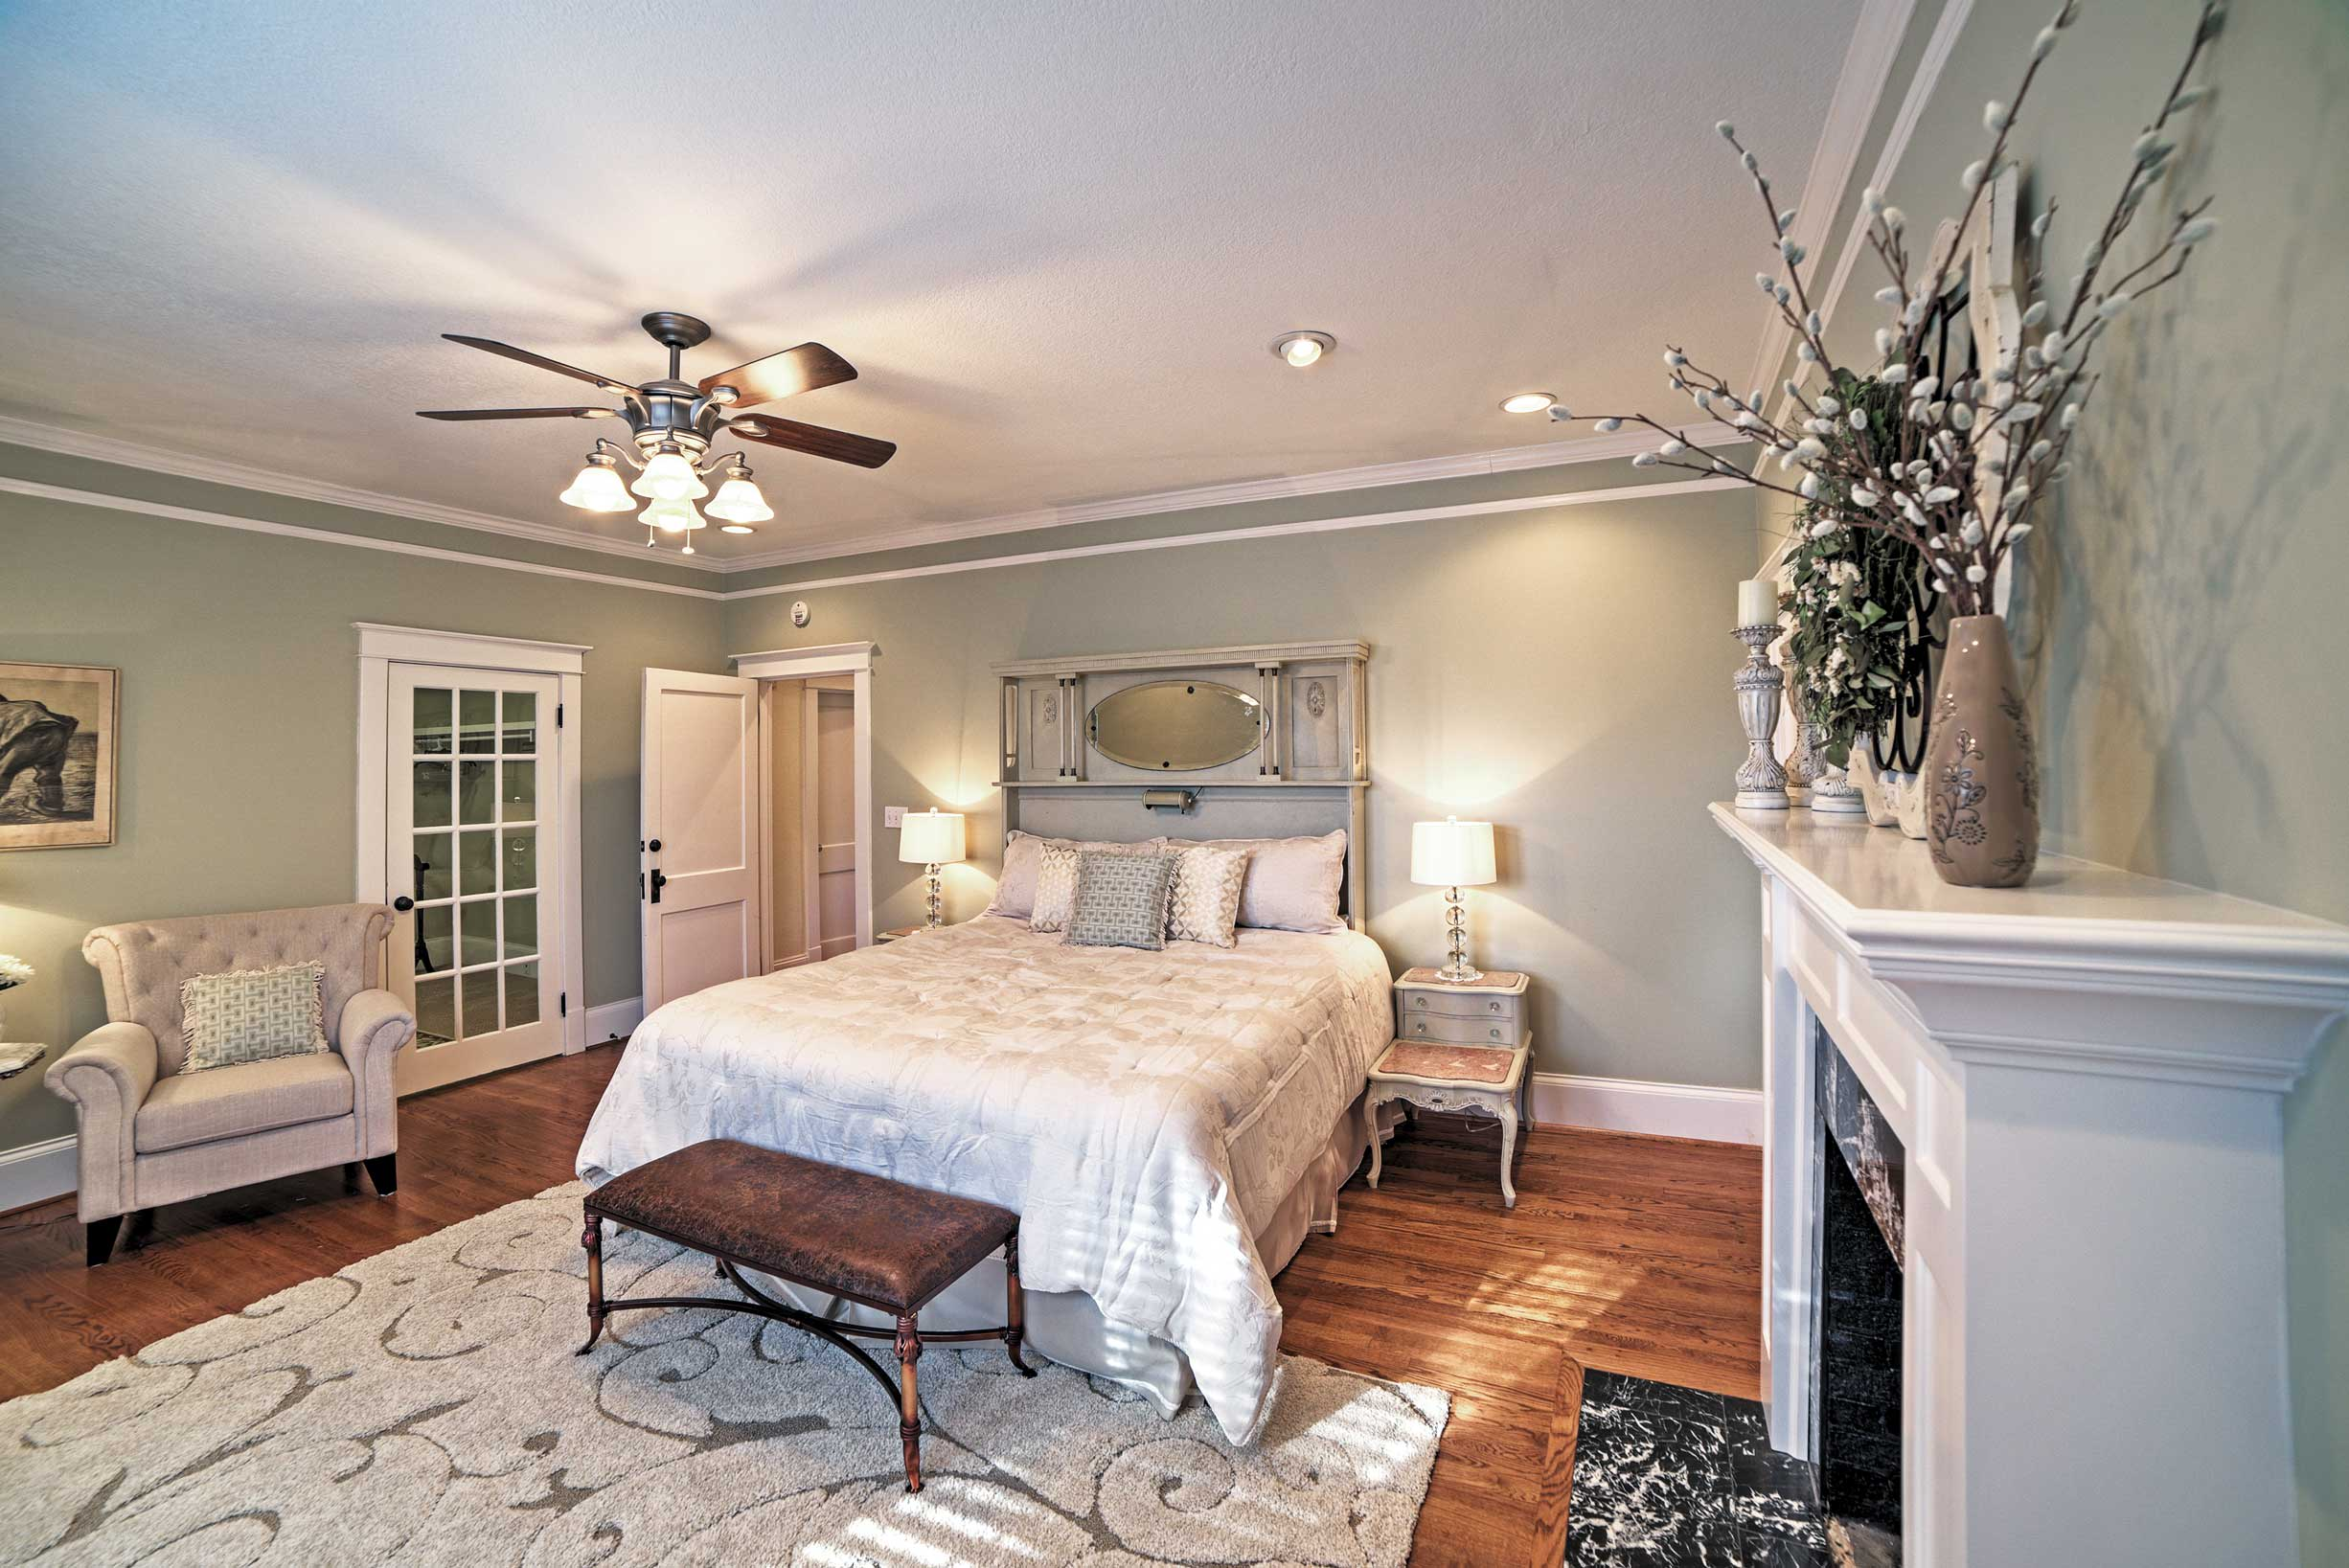 Rest your head in this gorgeous bedroom.